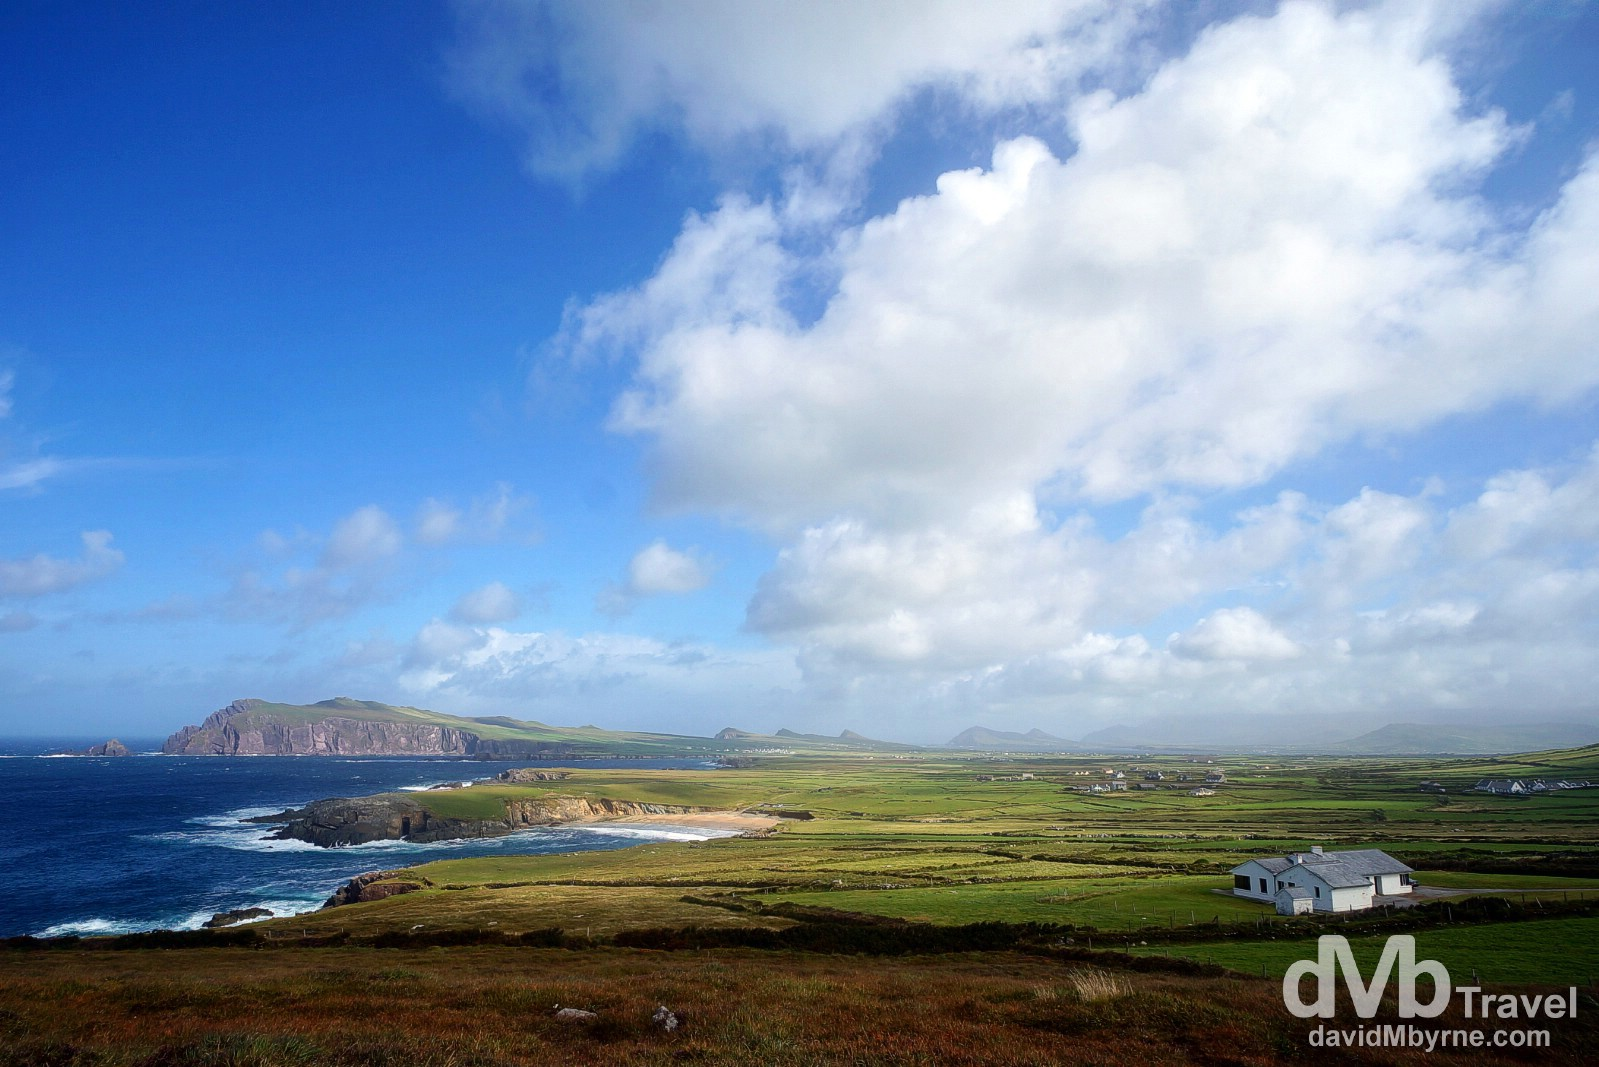 Slea Head scenery on the Dingle Peninsula, Co. Kerry, Ireland. August 28, 2014.